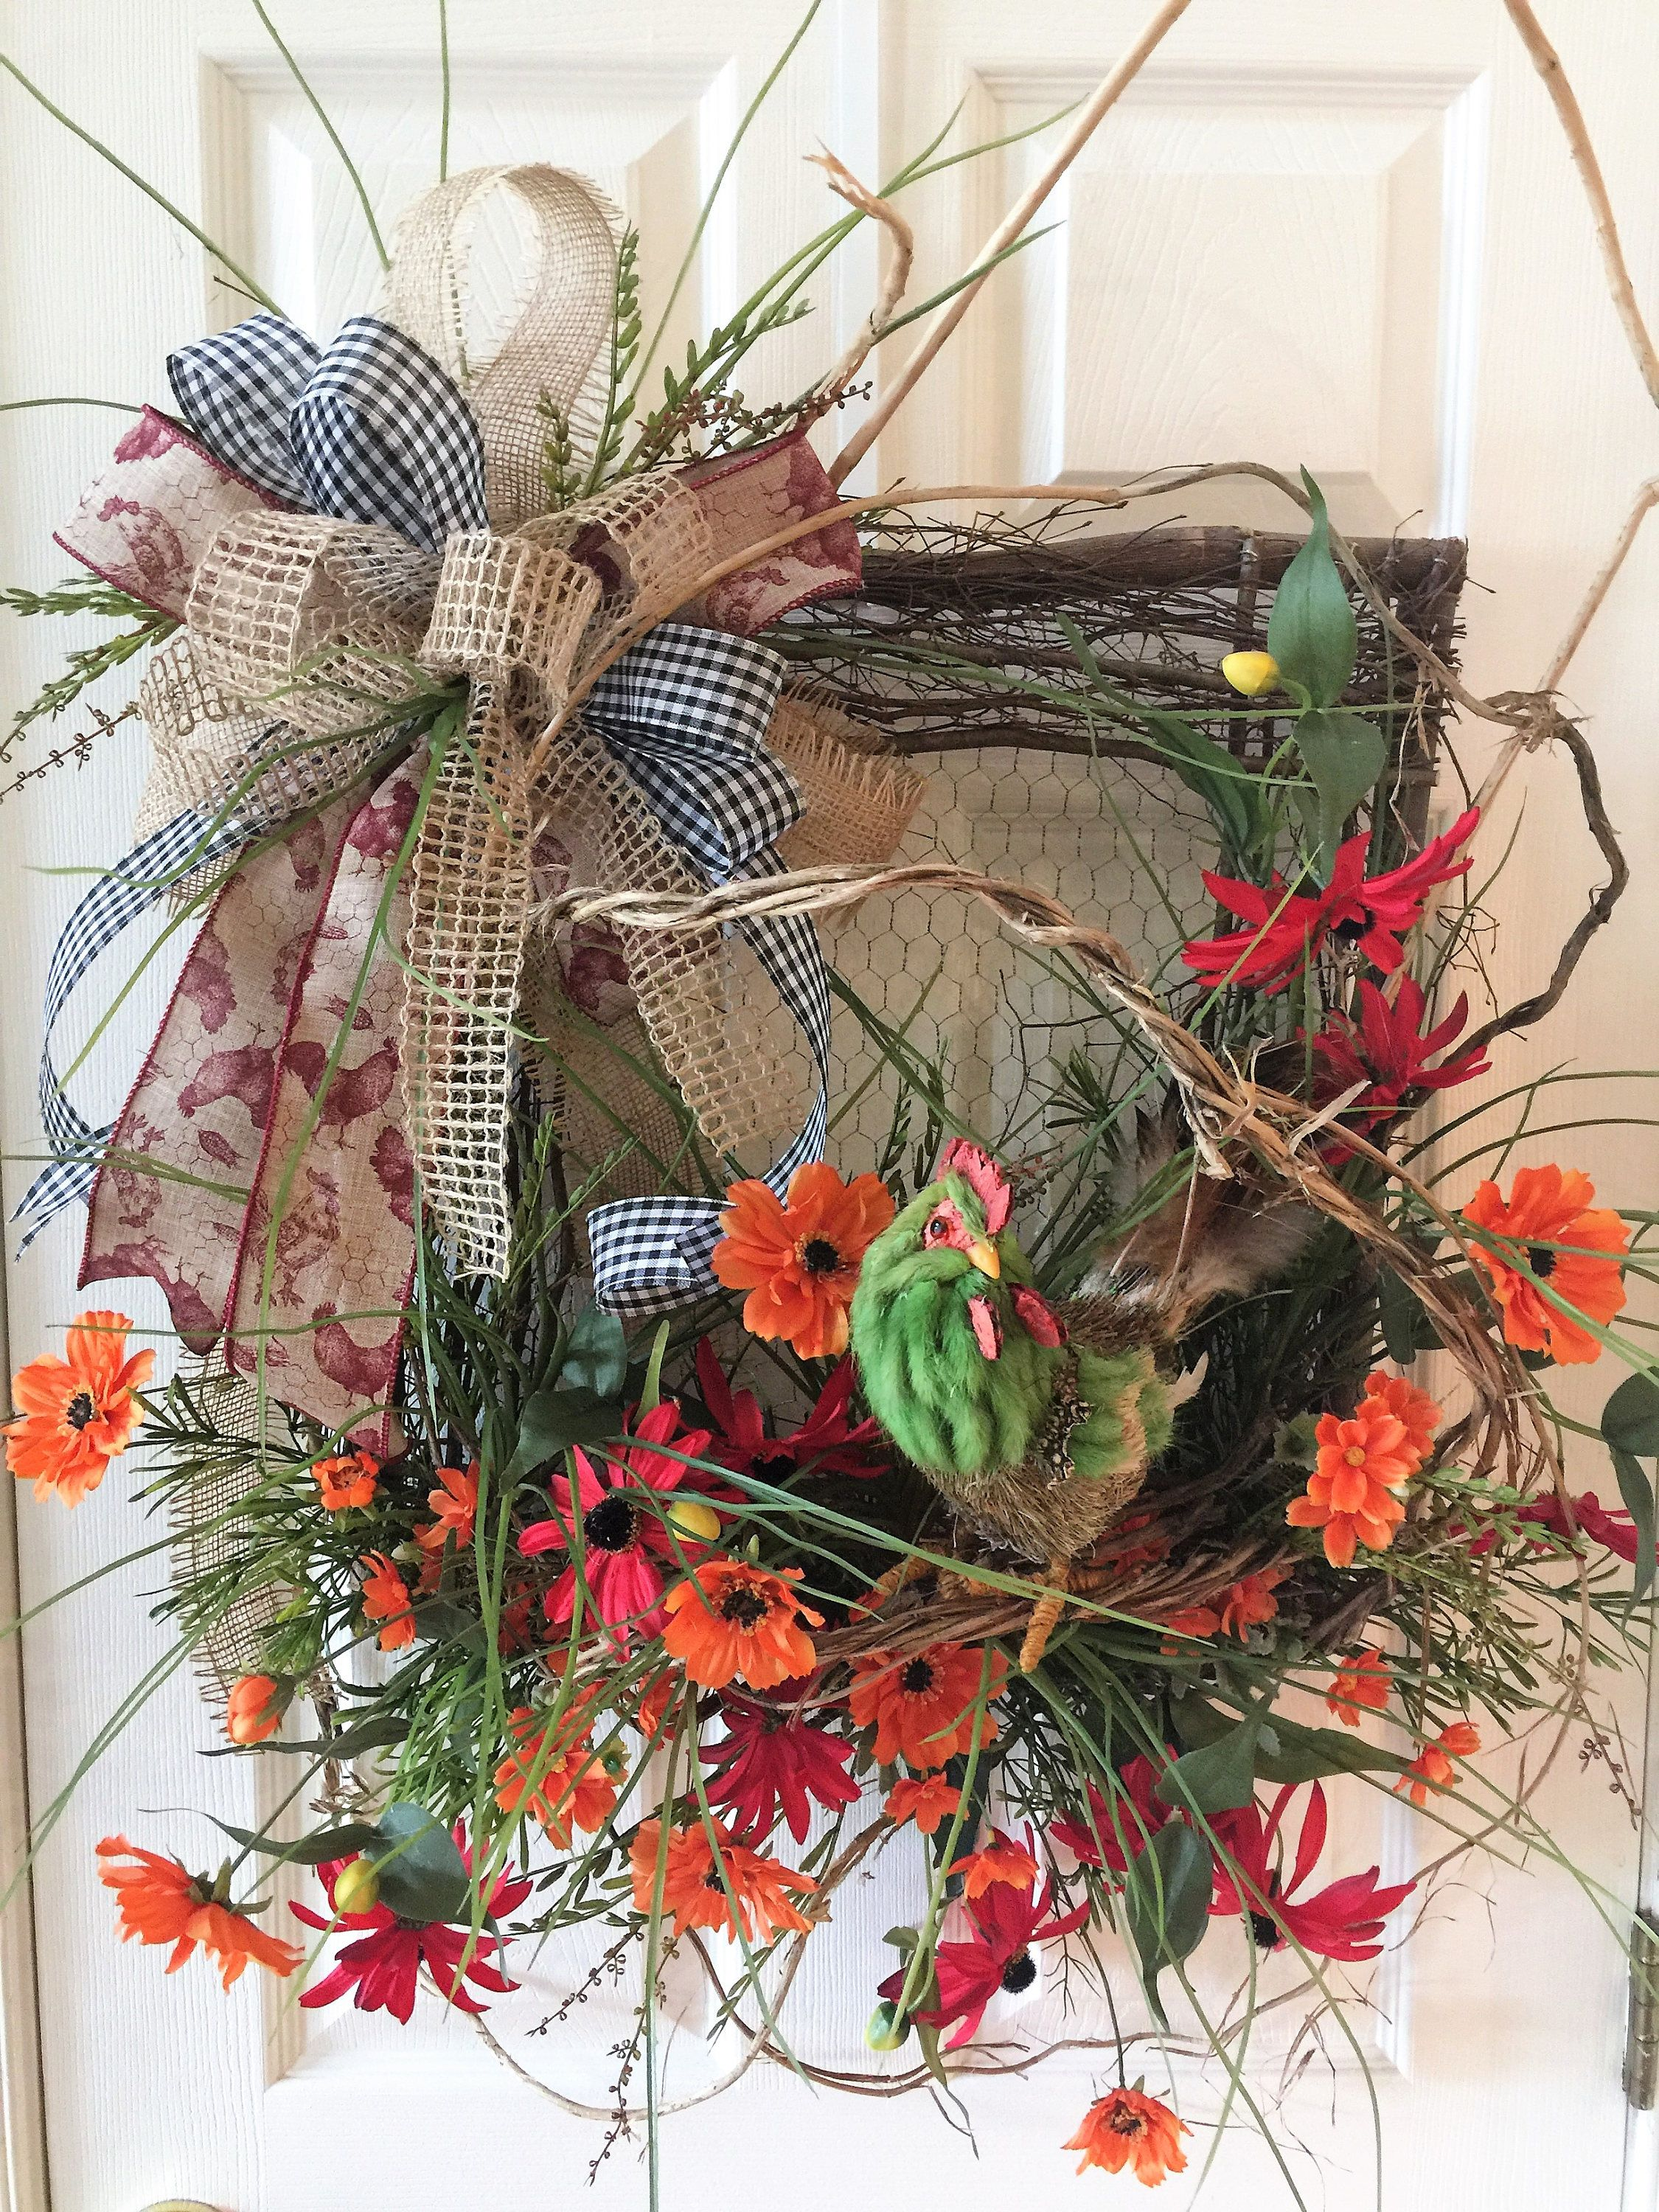 Country French Wreath, Square Wreath With Rooster, Fall Wreath, Rooster,  Orange And Red, Country French Ribbon, Black And White Check